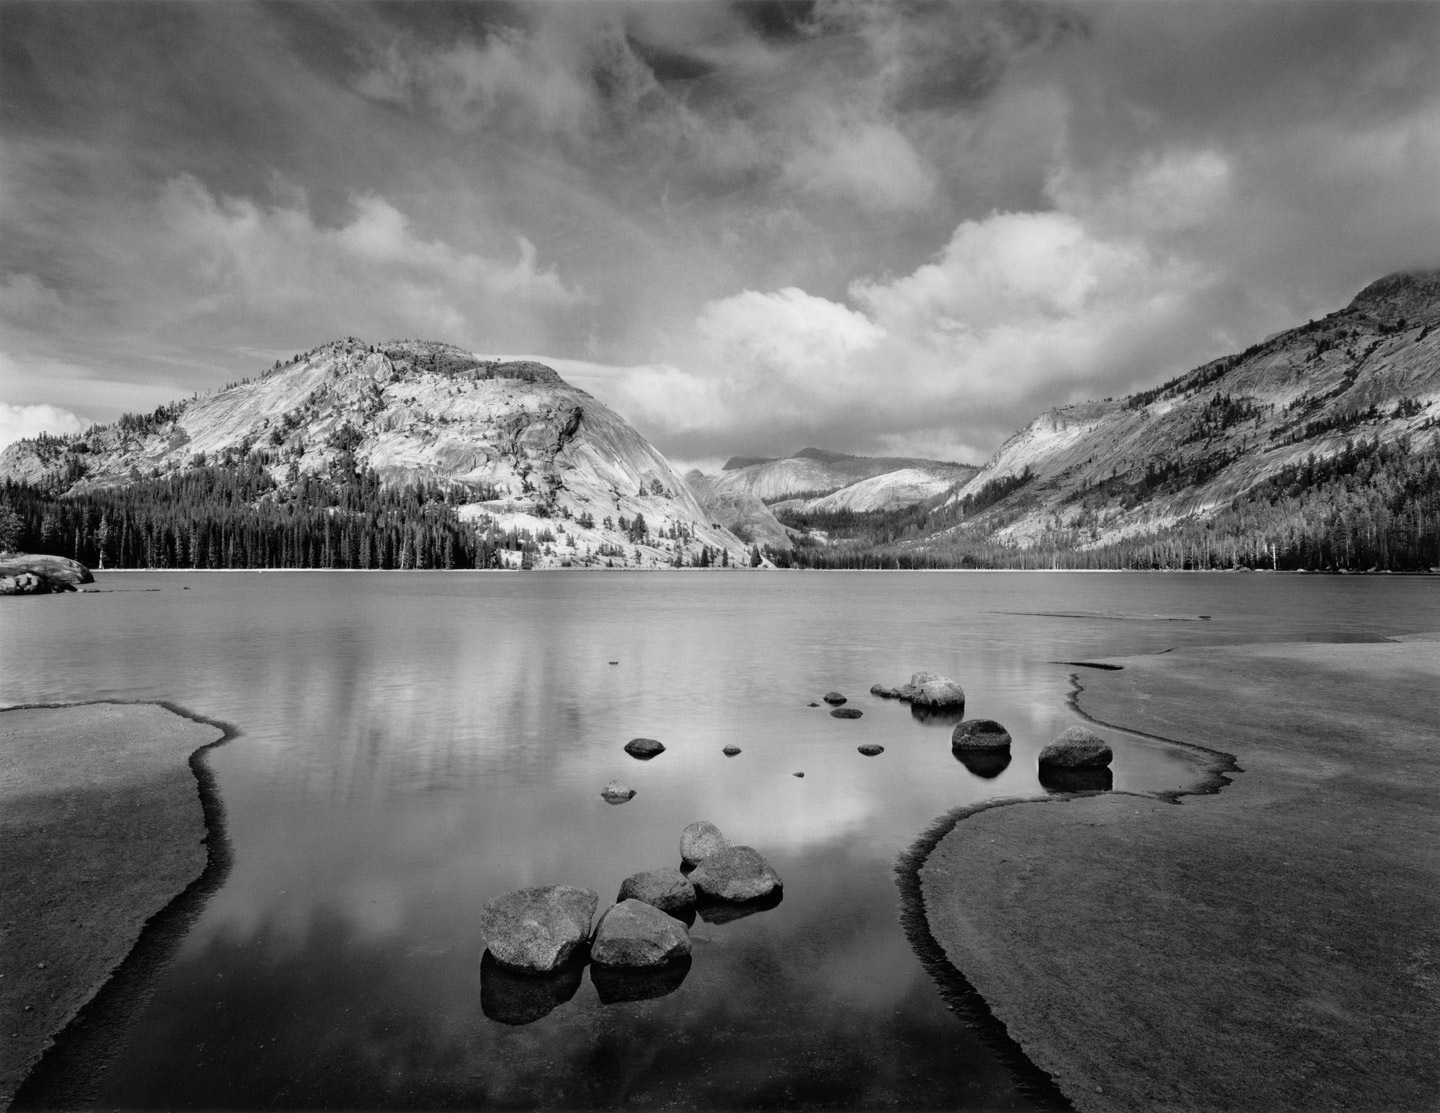 History in Photos: Ansel Adams